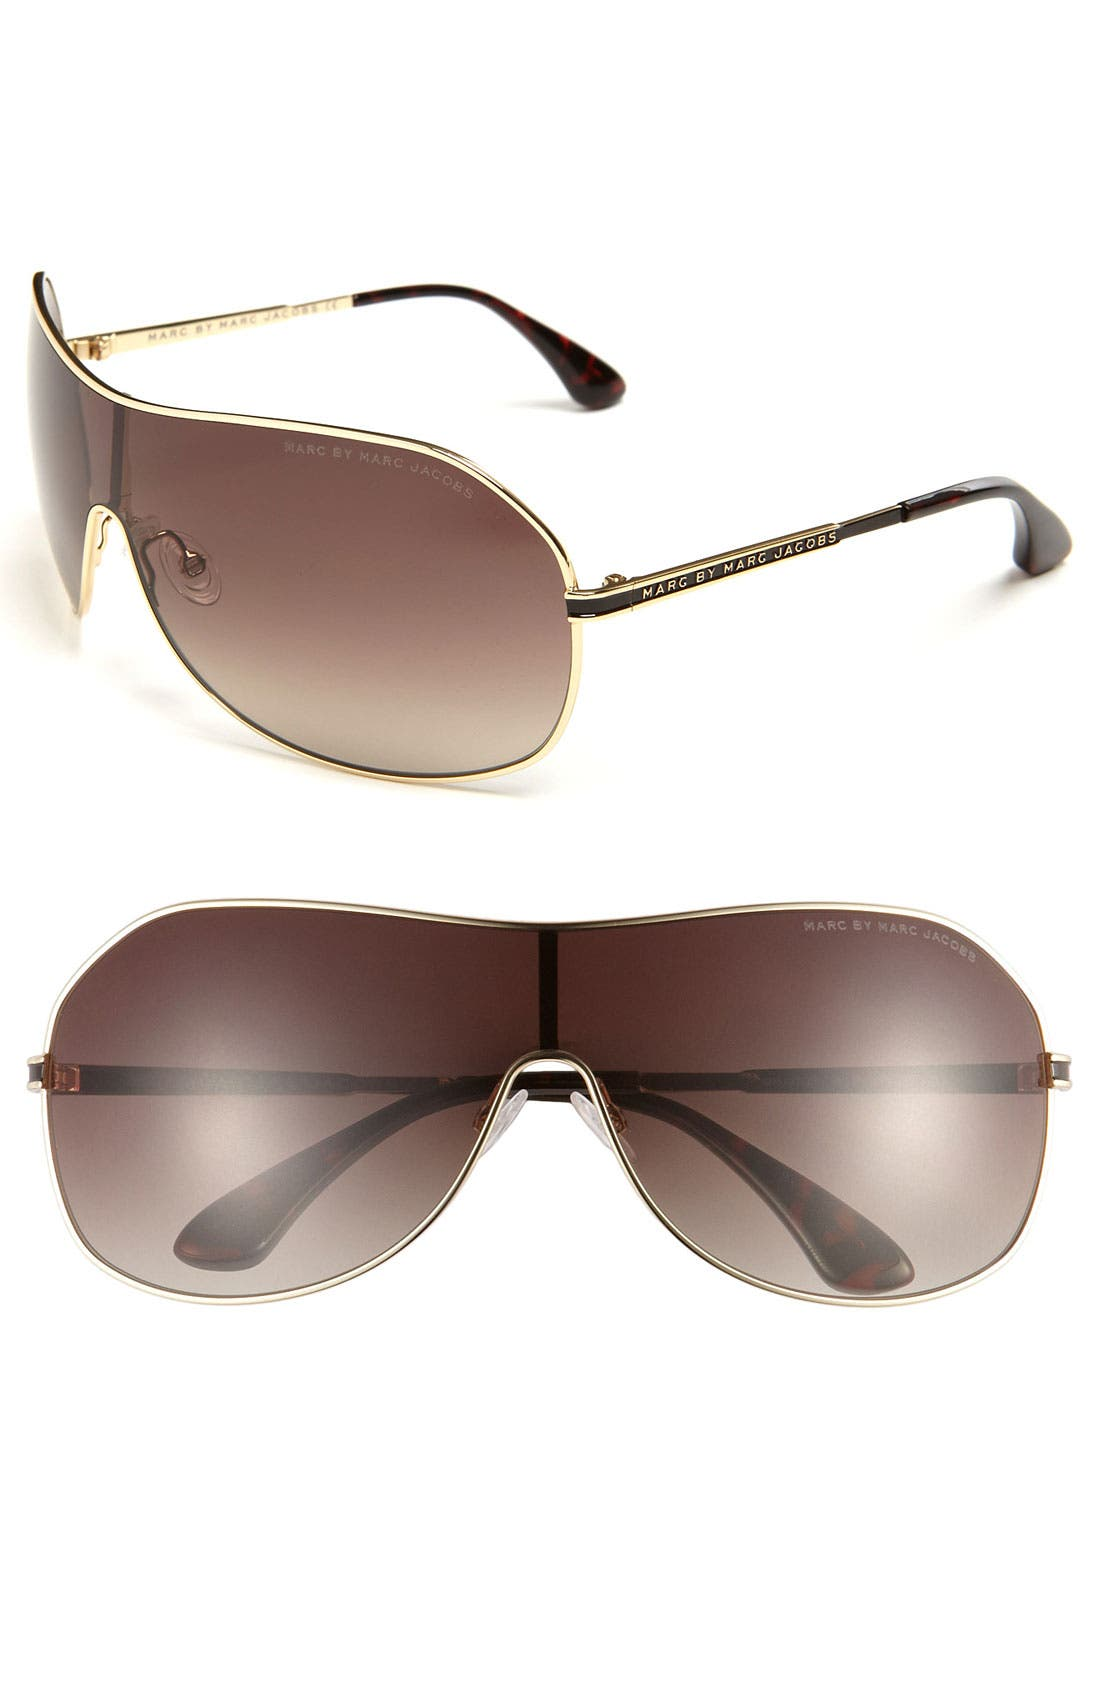 Main Image - MARC BY MARC JACOBS 72mm Shield Sunglasses